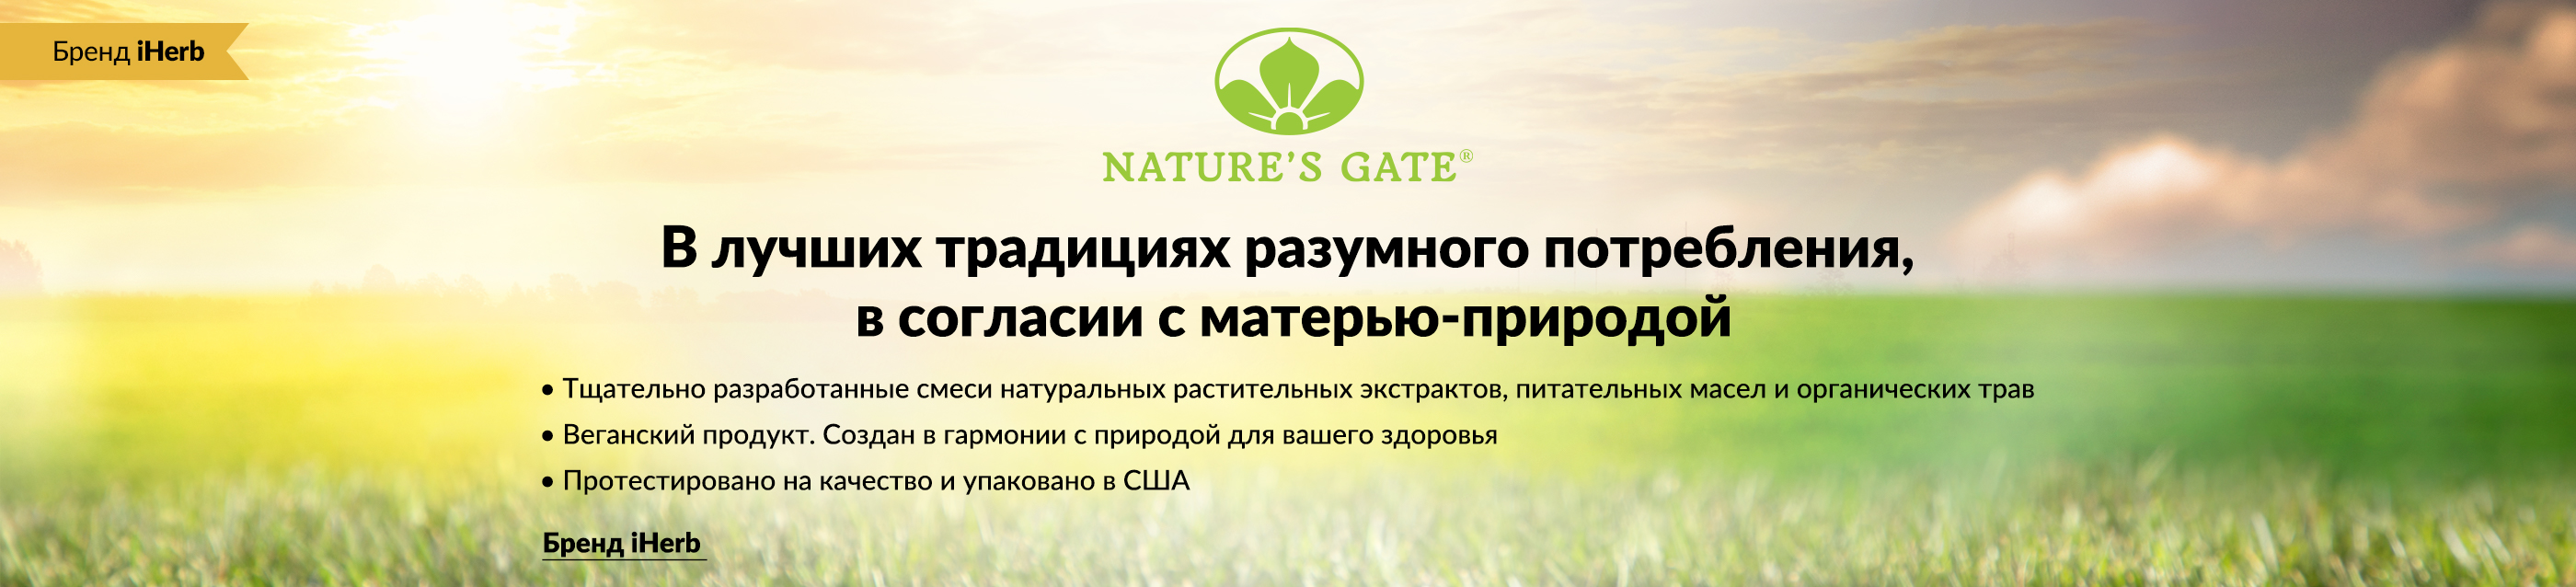 Nature's Gate